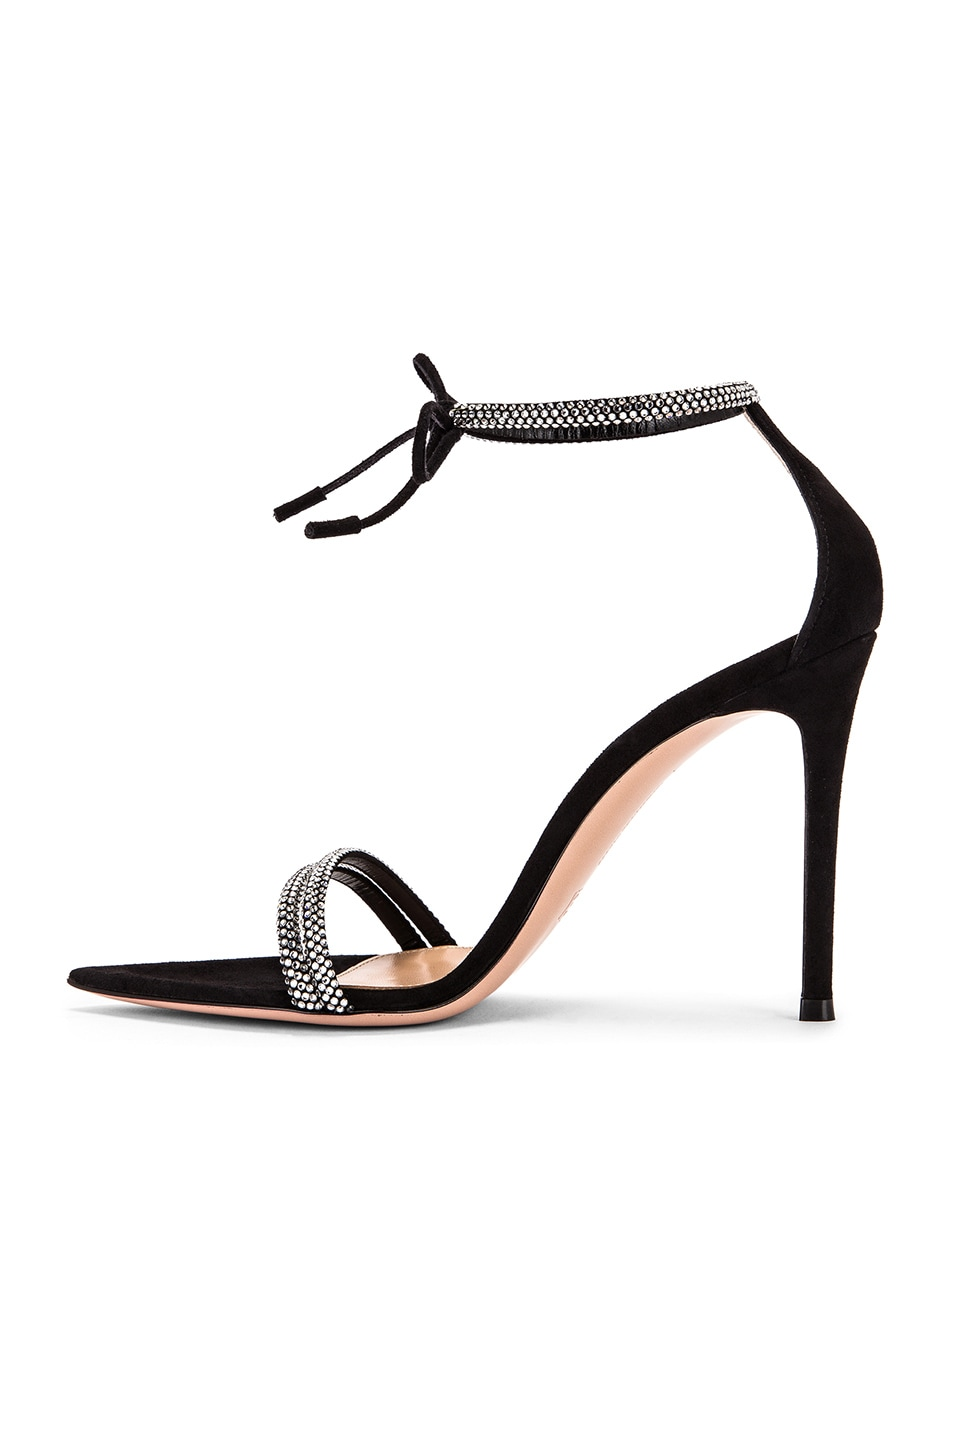 Image 5 of Gianvito Rossi Camoscio Crystal Ankle Strap Heels in Black